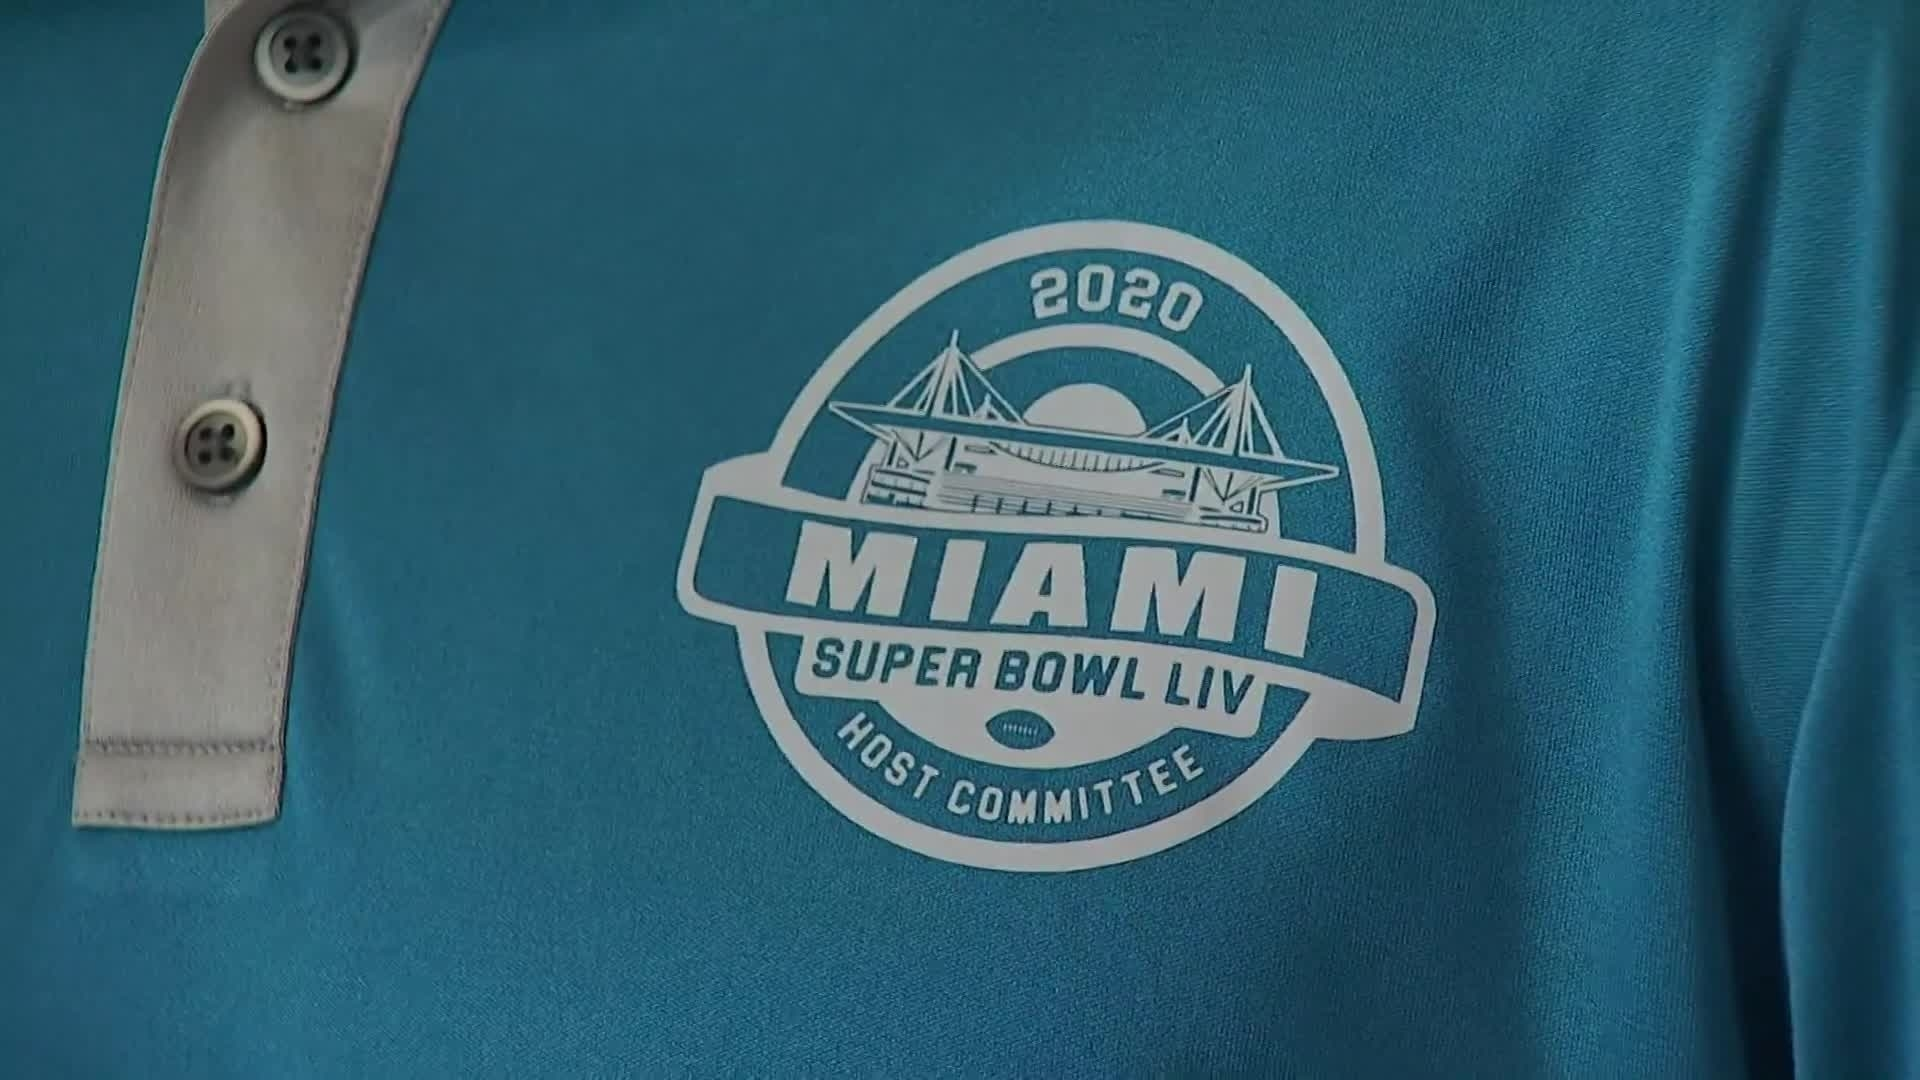 Officials Looking For Super Bowl 2020 Volunteers | Wfla intended for Volunteer For Miami Super Bowl